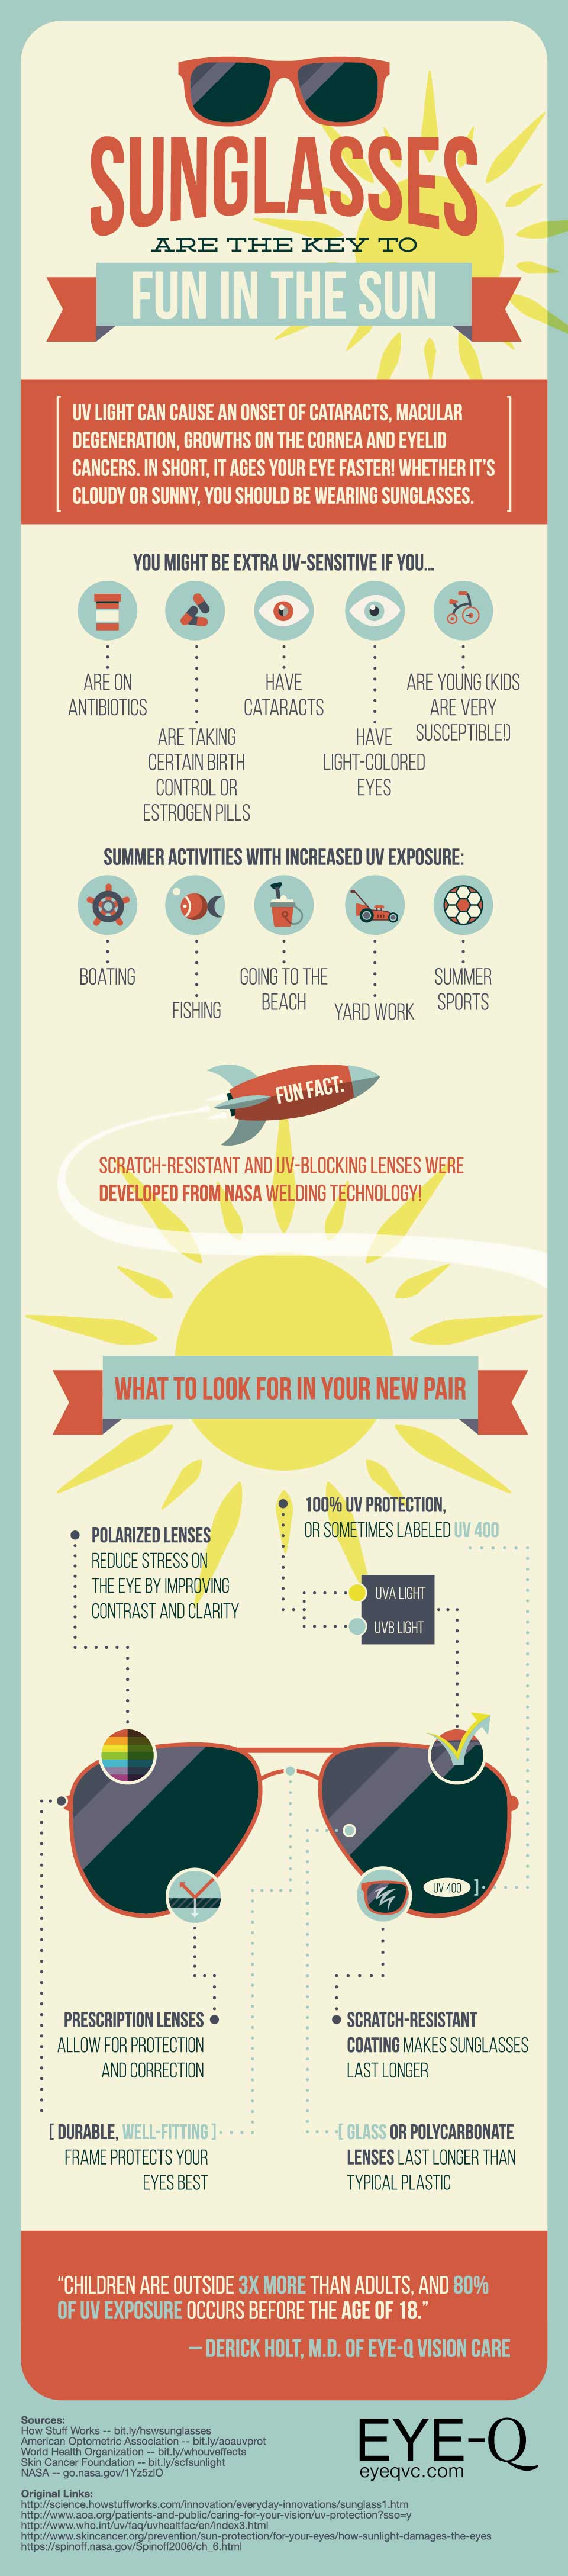 Sunglasses: The Key To Healthy Summer Infographic